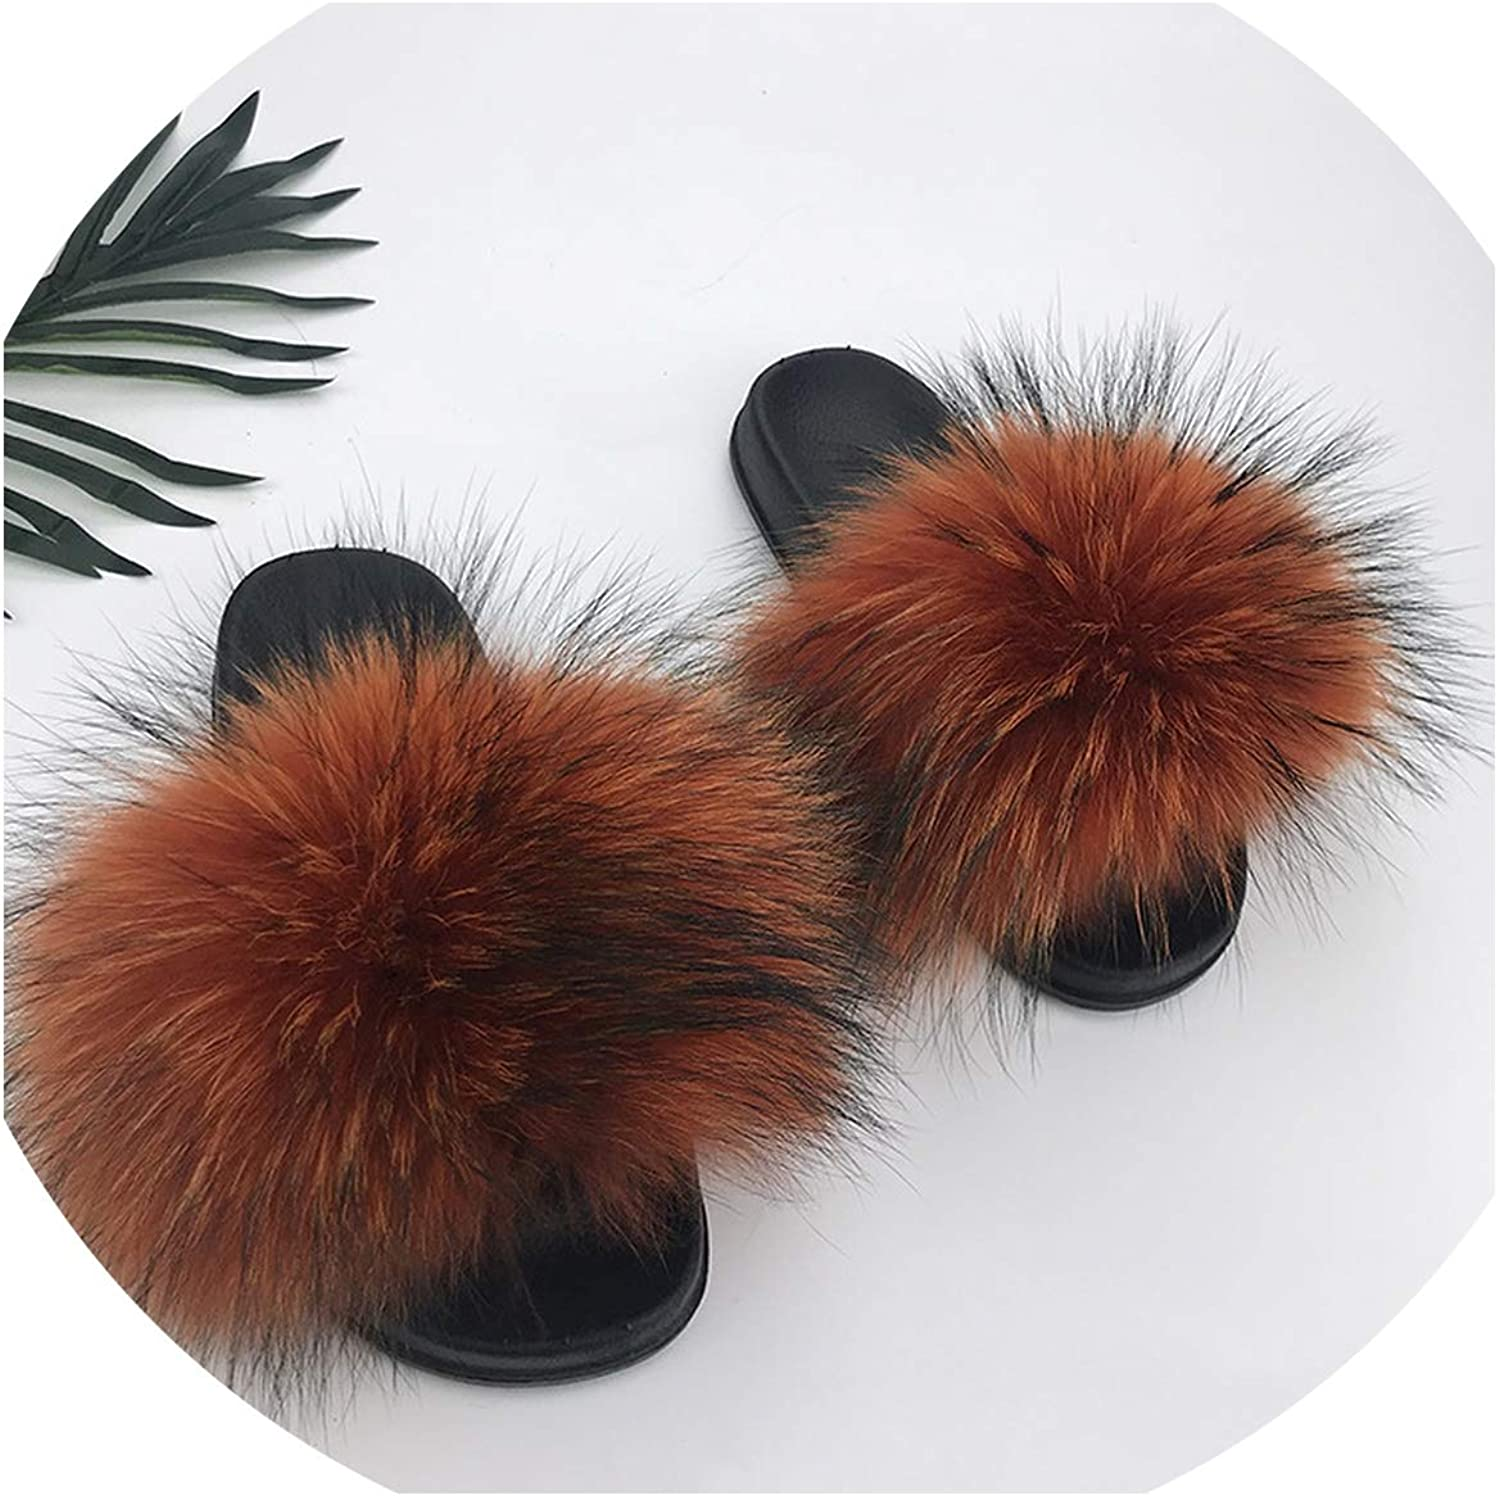 Just XiaoZhouZhou 28 colors Real Fur Slippers Women Fox Fluffy Sliders Comfort with Feathers Furry Summer Flats Sweet Ladies shoes Plus Size 36-45,5,91